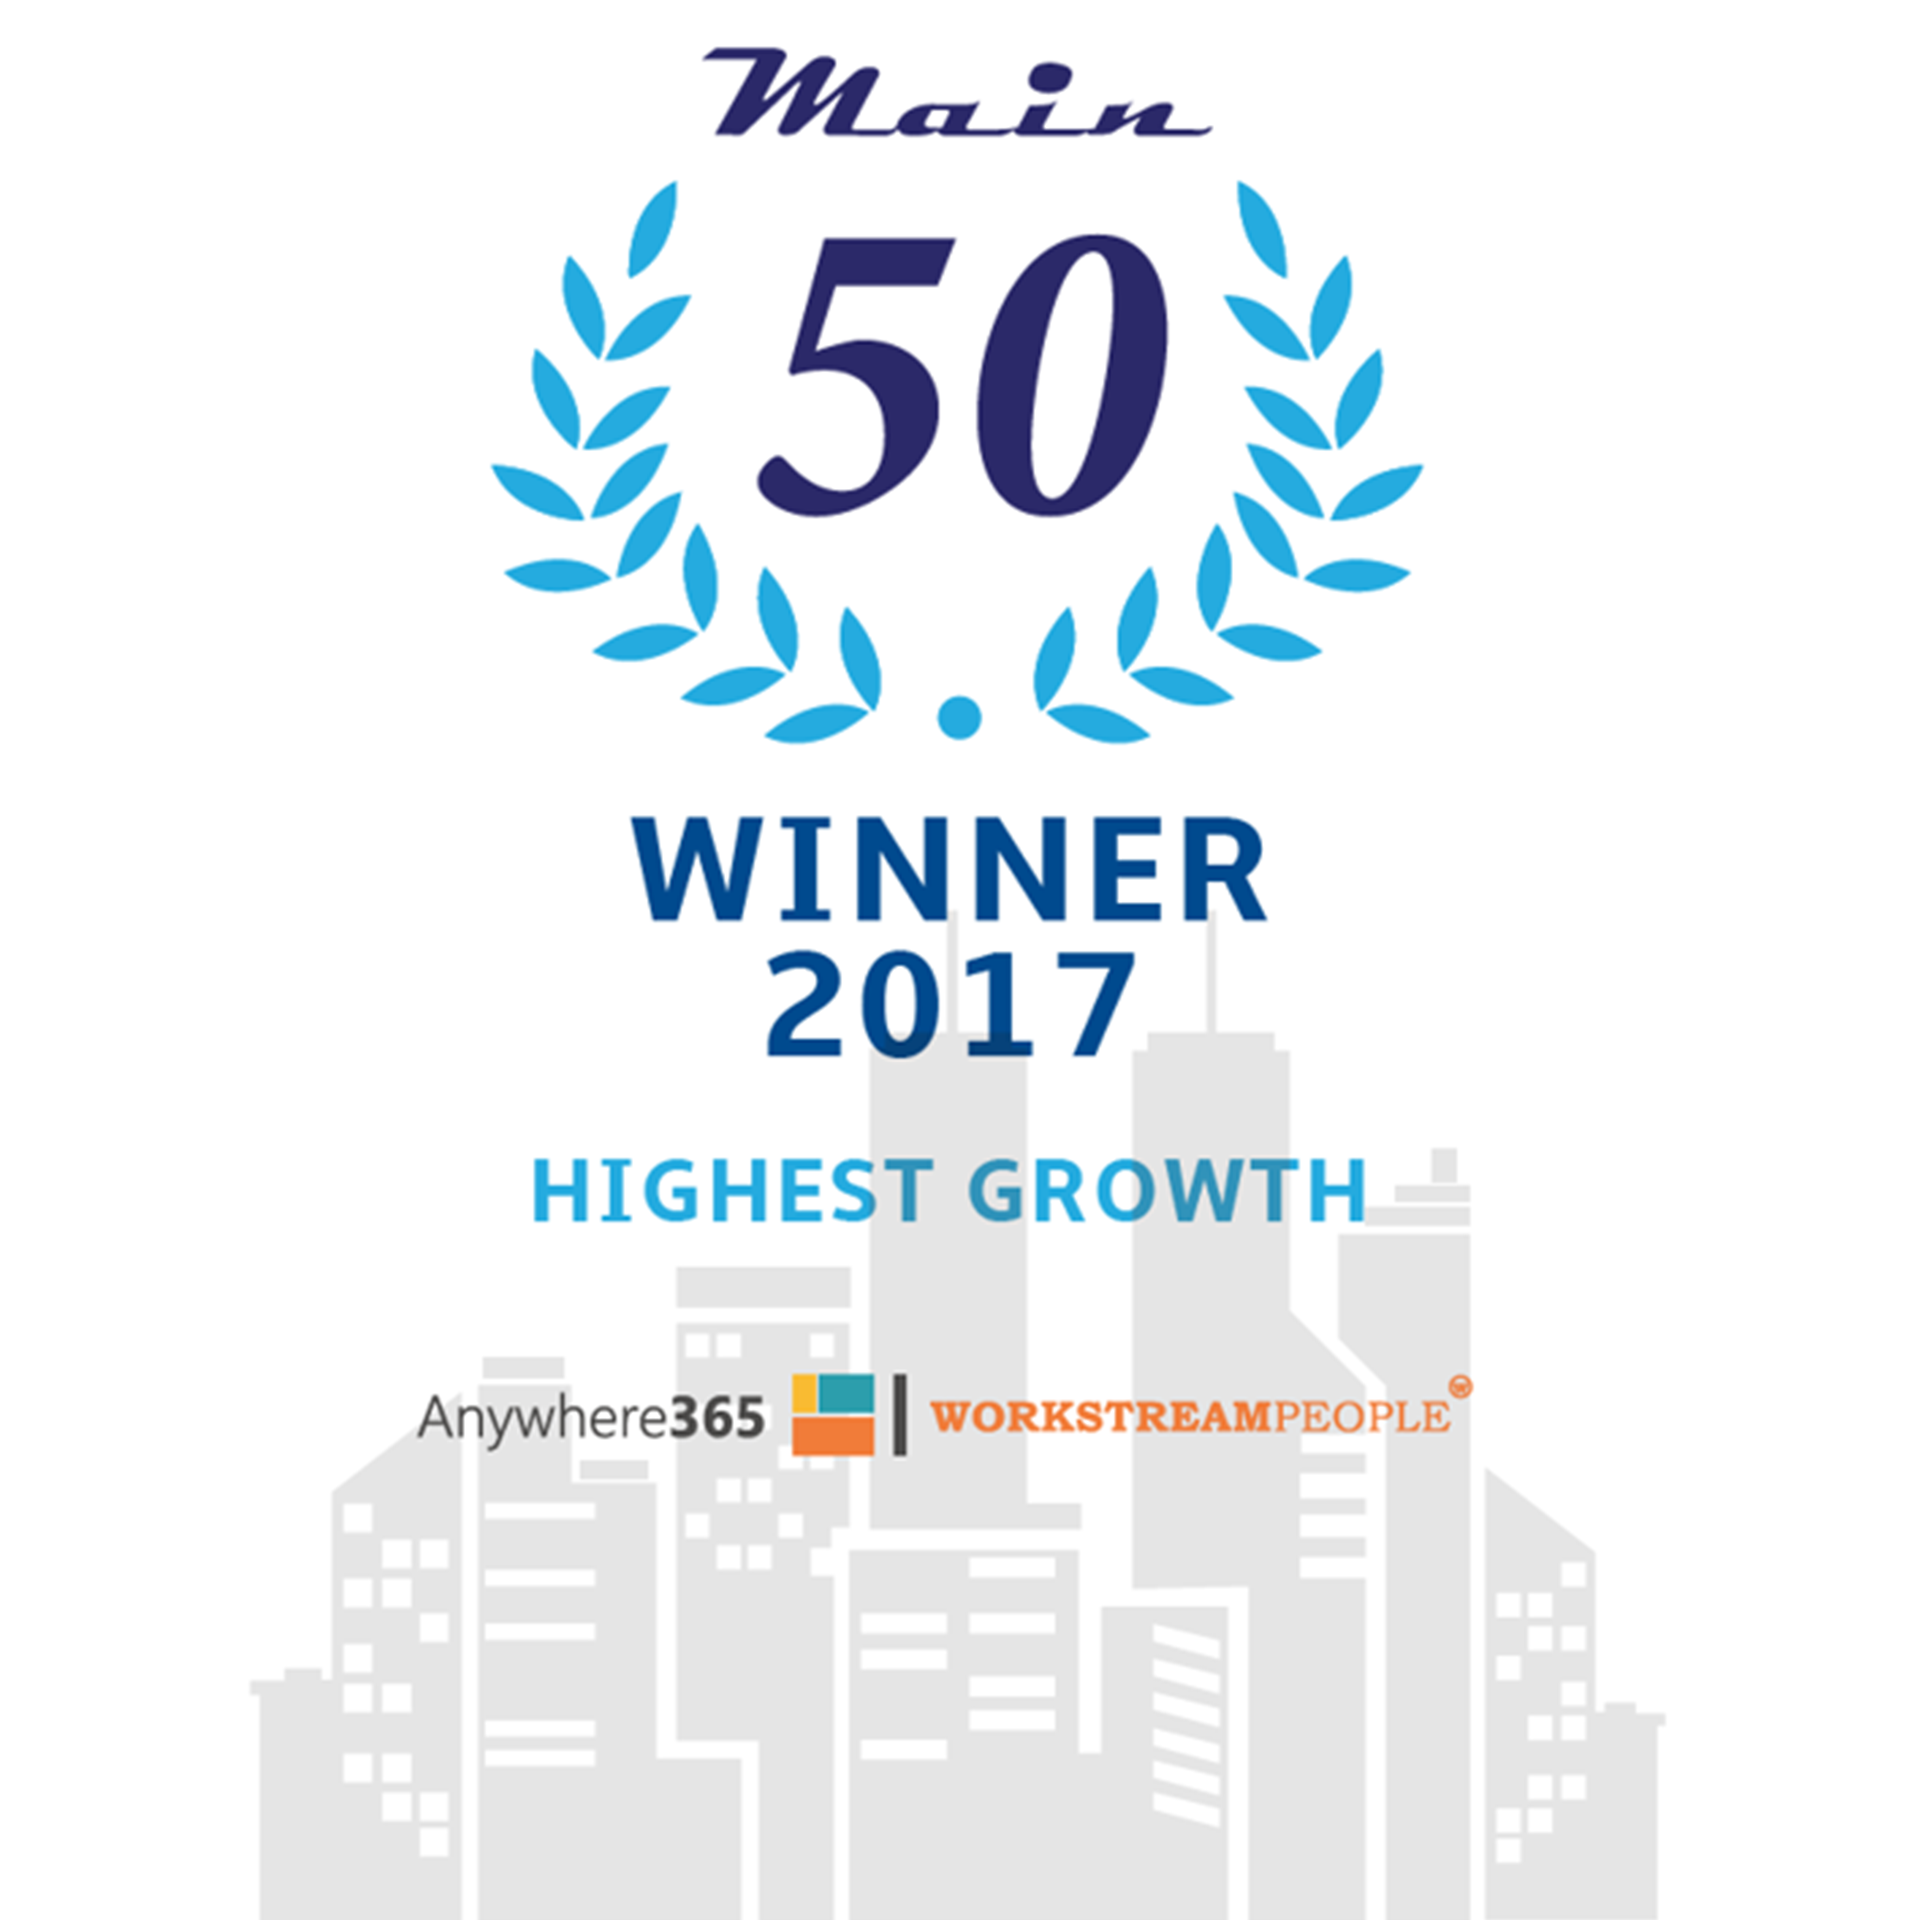 Main 50 Highest Growth - 2017